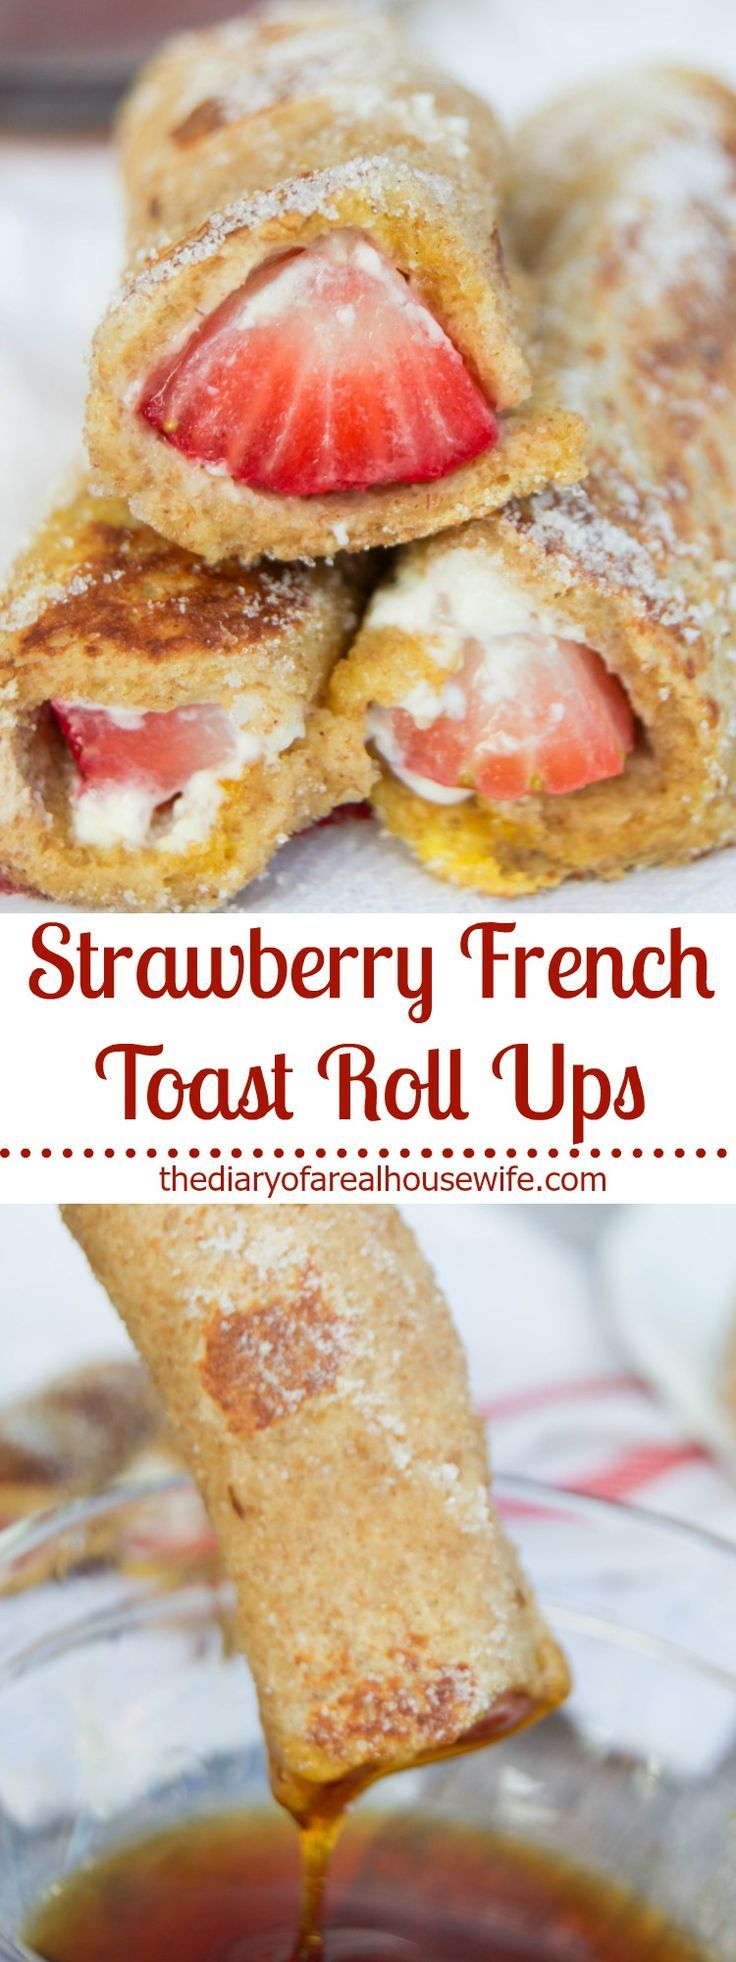 Add some fun and flavor to your morning with this sweet fruit rolled up with cream cheese and cooked like French Toast. You'll enjoy every bite!